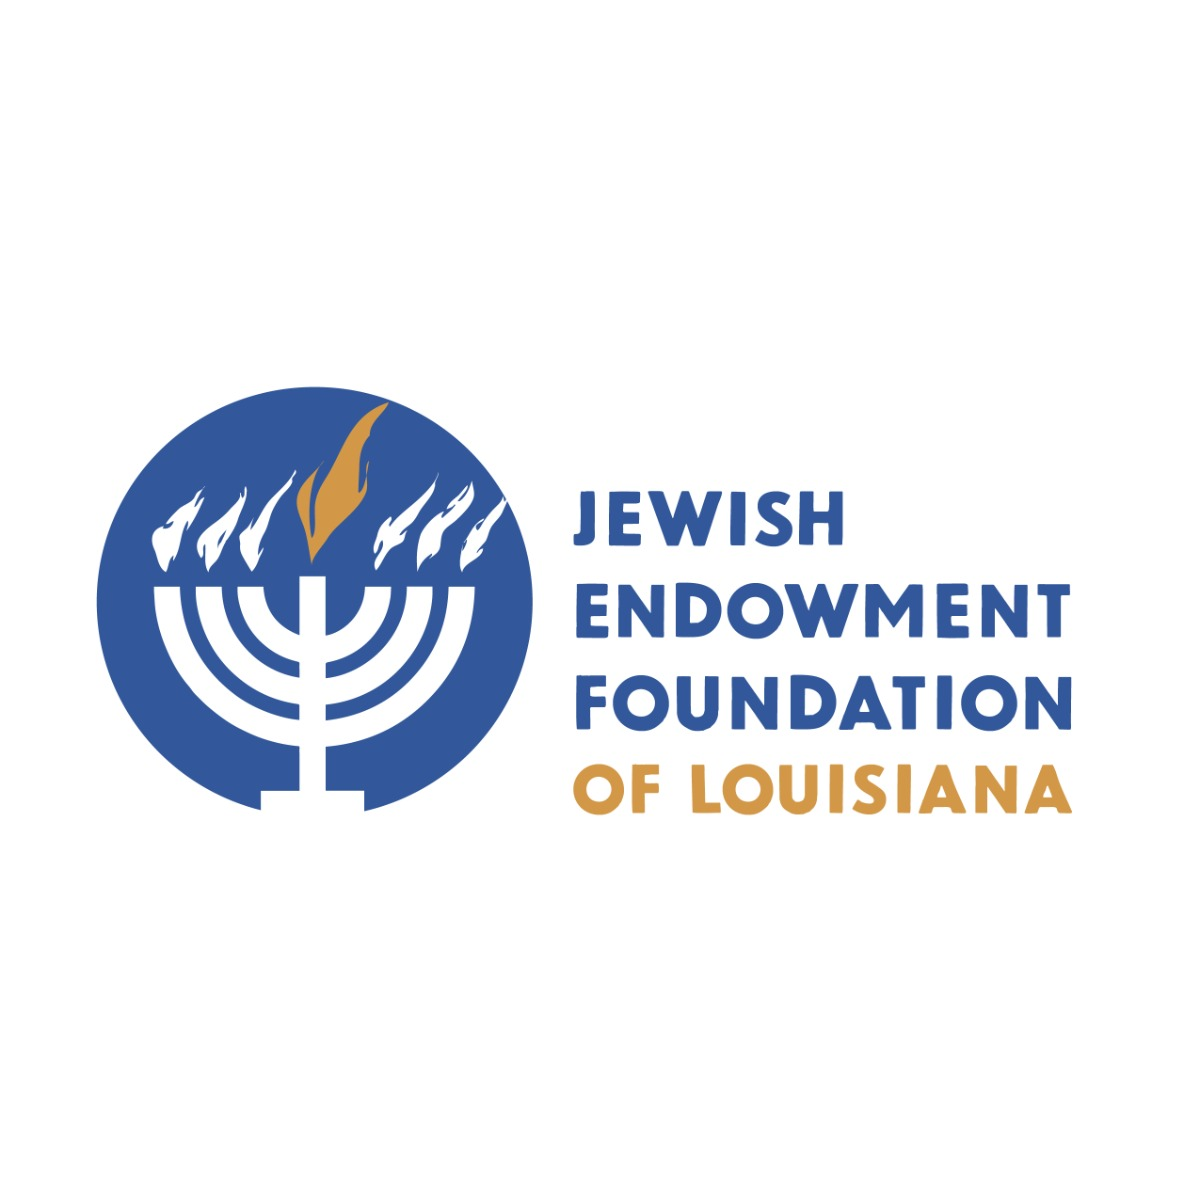 Jewish Endowment Foundation of Louisiana